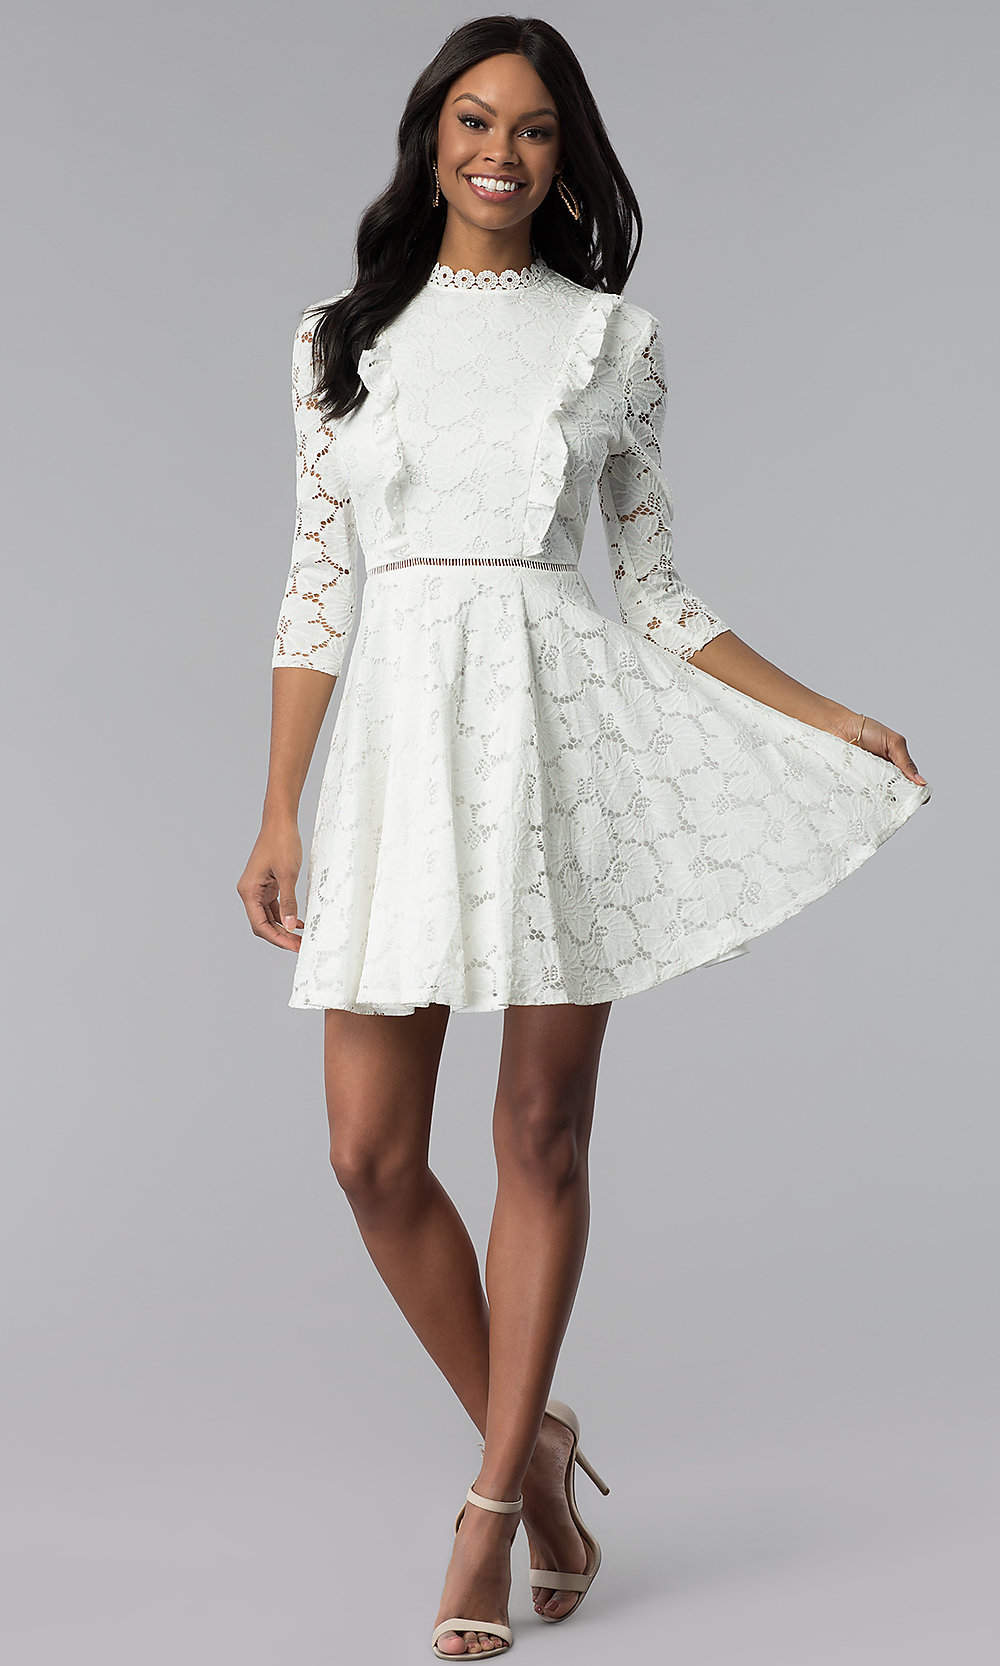 a677146f38 ... graduation dress. Style. Tap to expand · Image of white lace ...